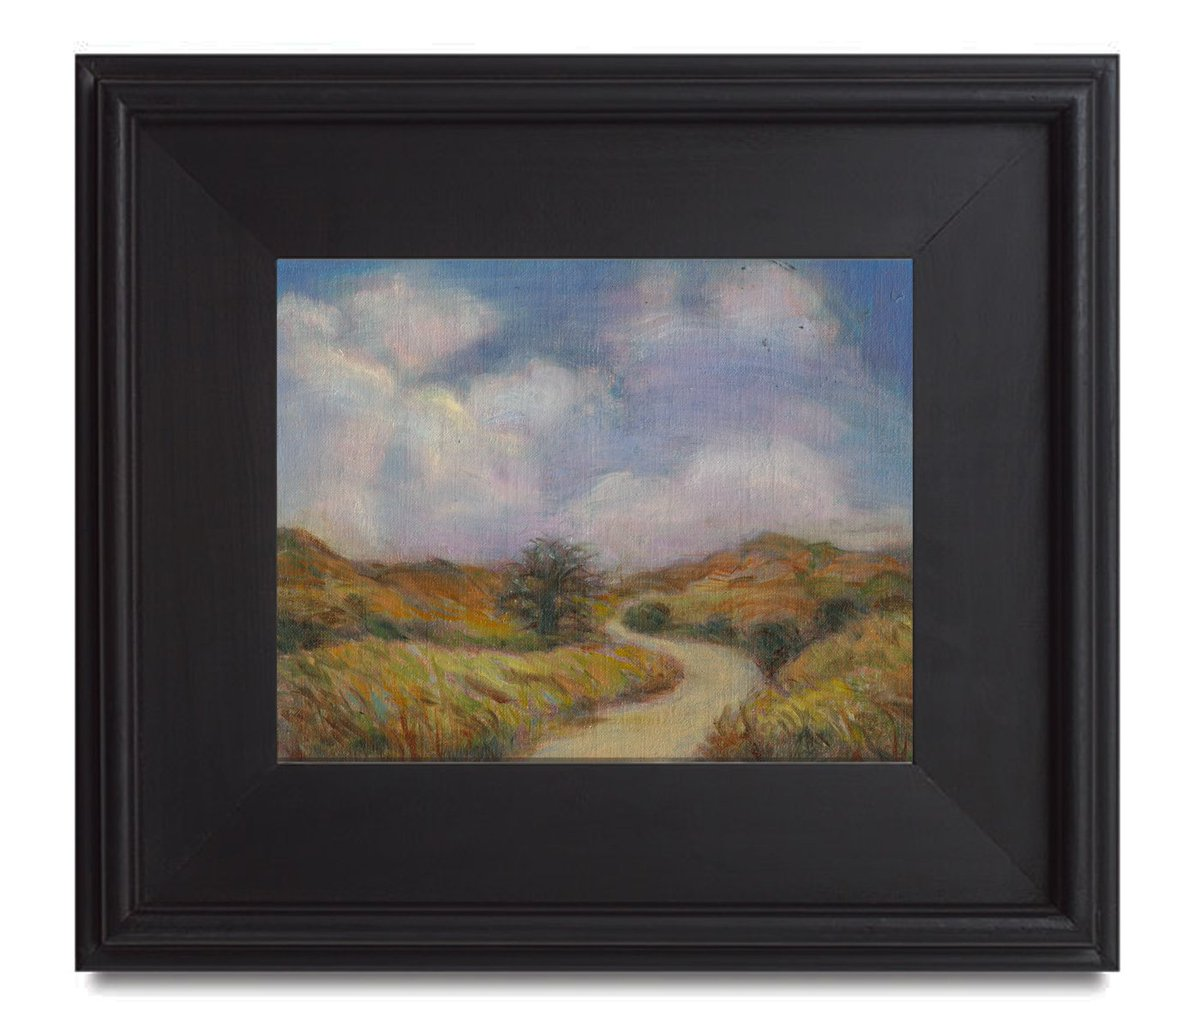 Deukmajian Wilderness Park Trail Study  http:// ow.ly/sMSq308e4S0  &nbsp;   #landscape #painting #study #wilderness #trail #art #interiordecor<br>http://pic.twitter.com/gKltFkqWp4